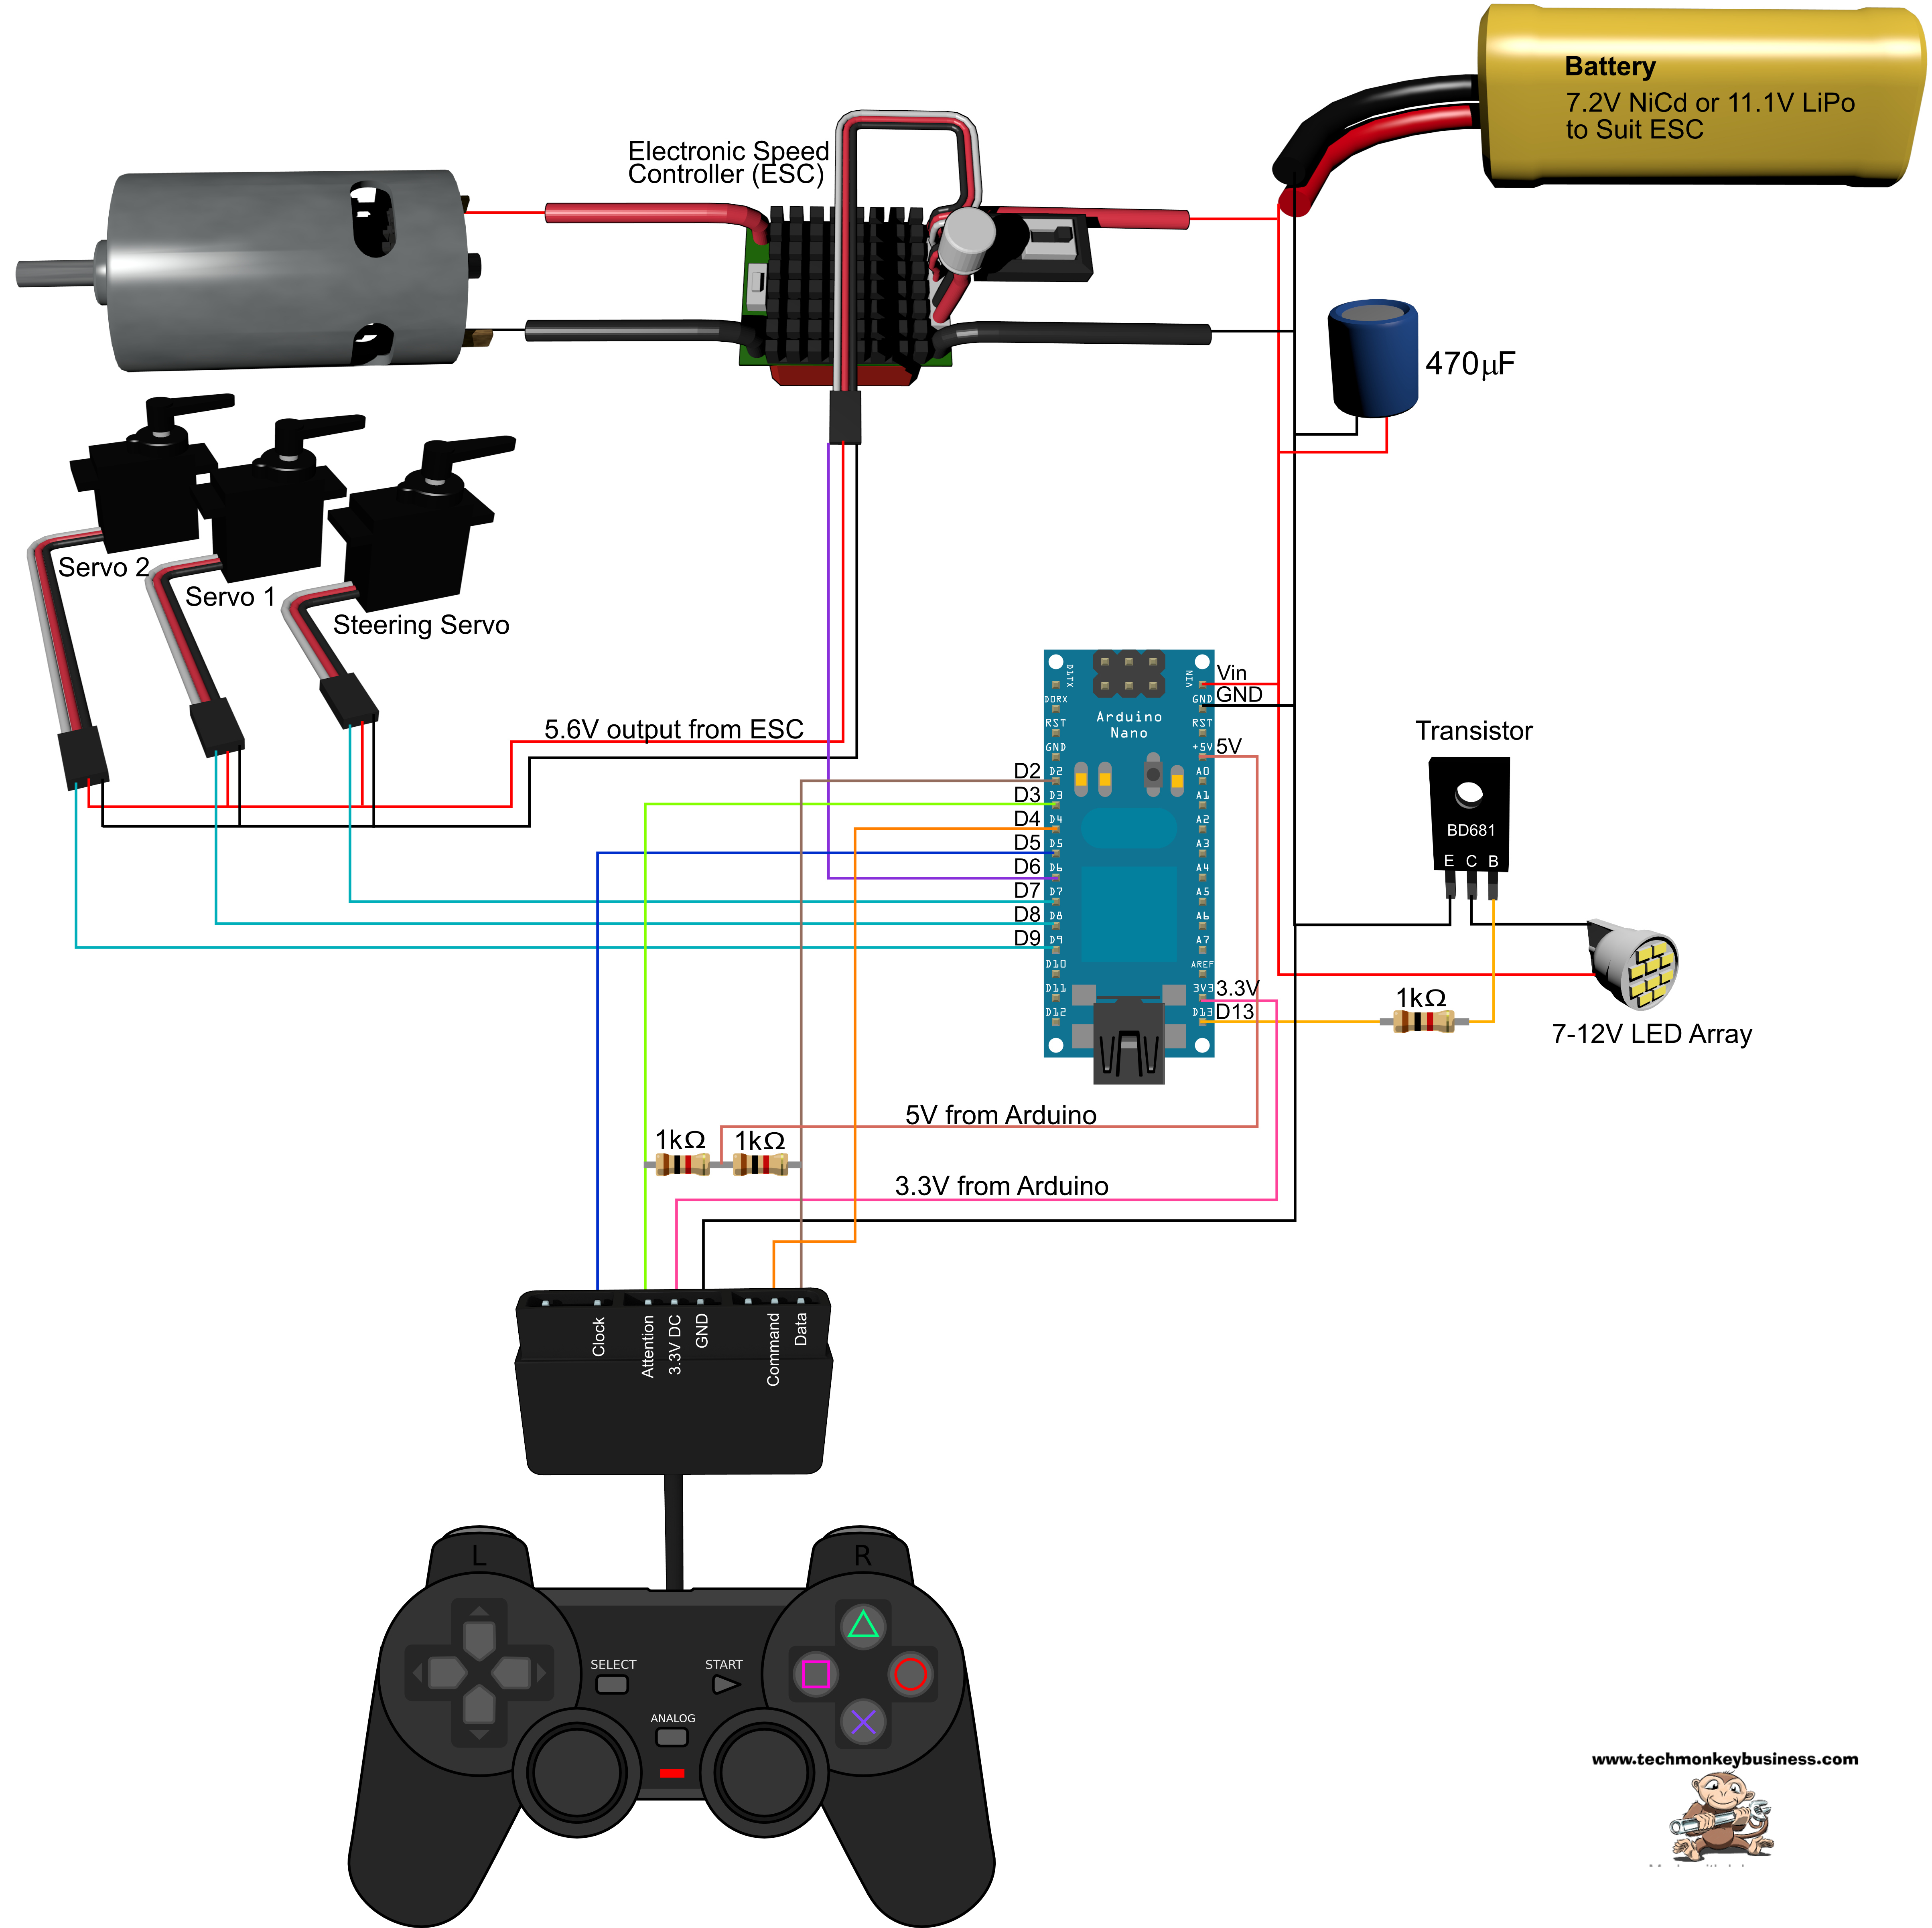 Using A Playstation 2 Controller With Your Arduino Project Wiring Diagram Control 4 System Circuit Of The Ps2 Demonstration Rig